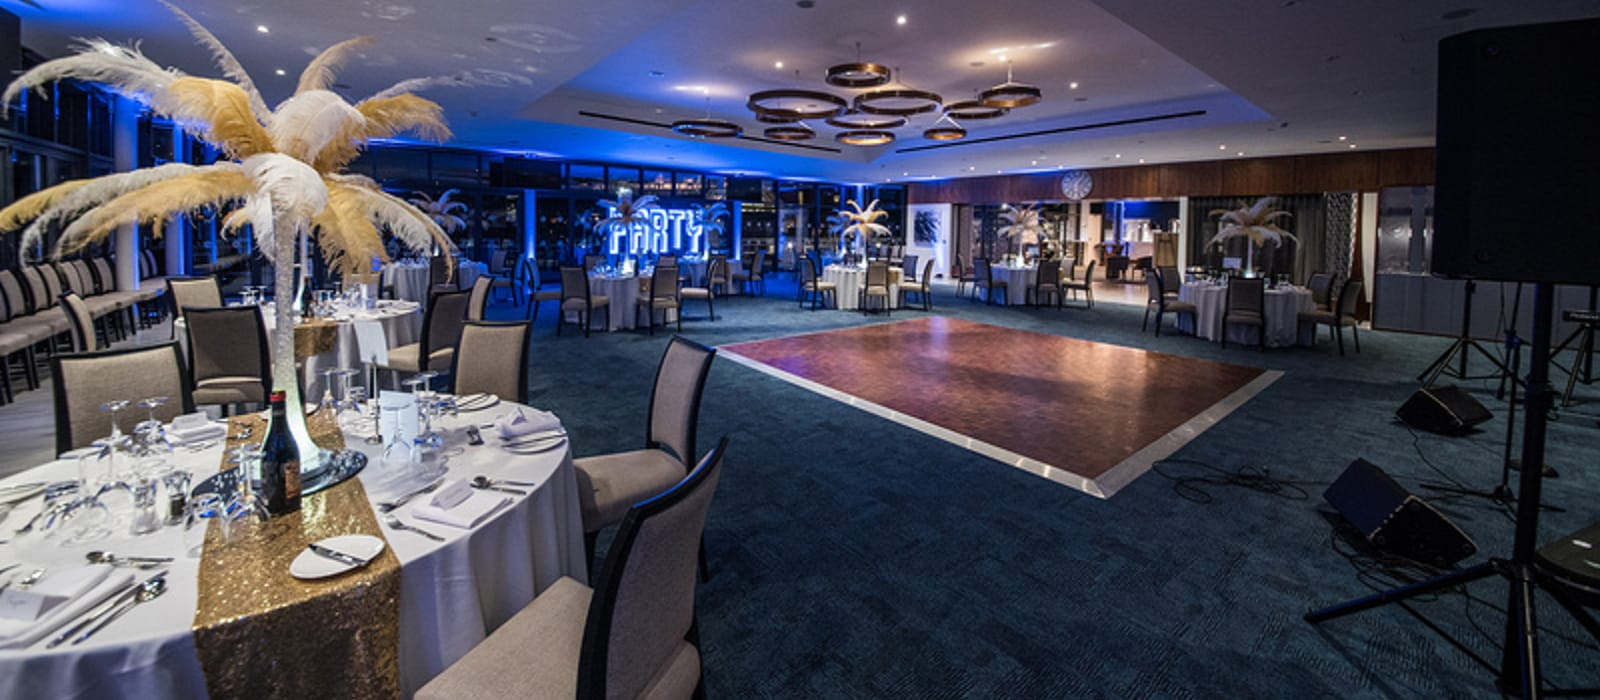 The Owners Club at Newbury Racecourse set up for a ball